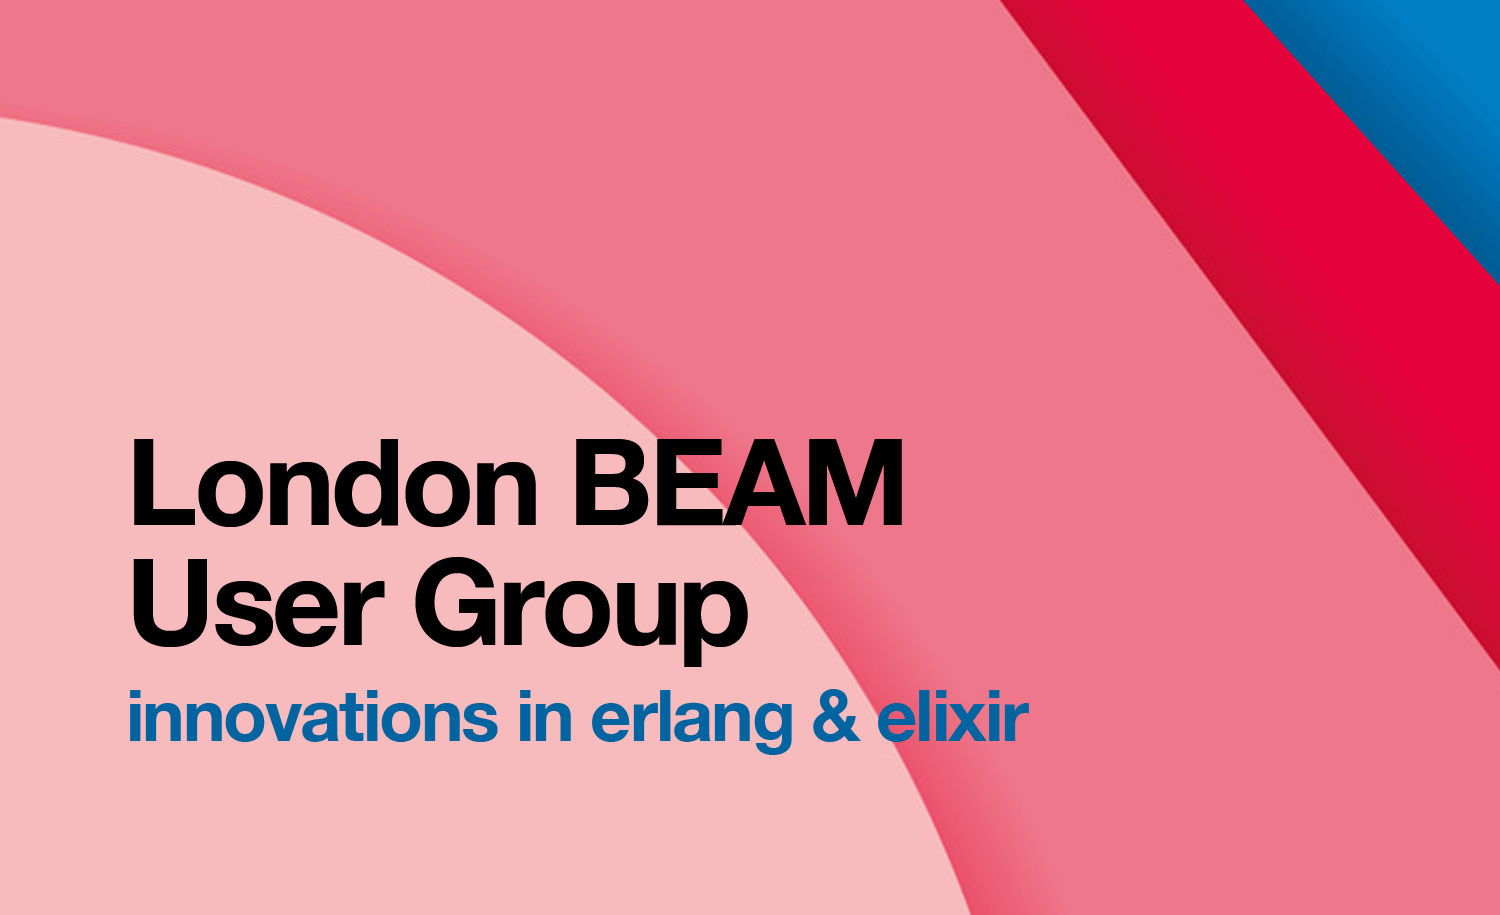 London BEAM User Group